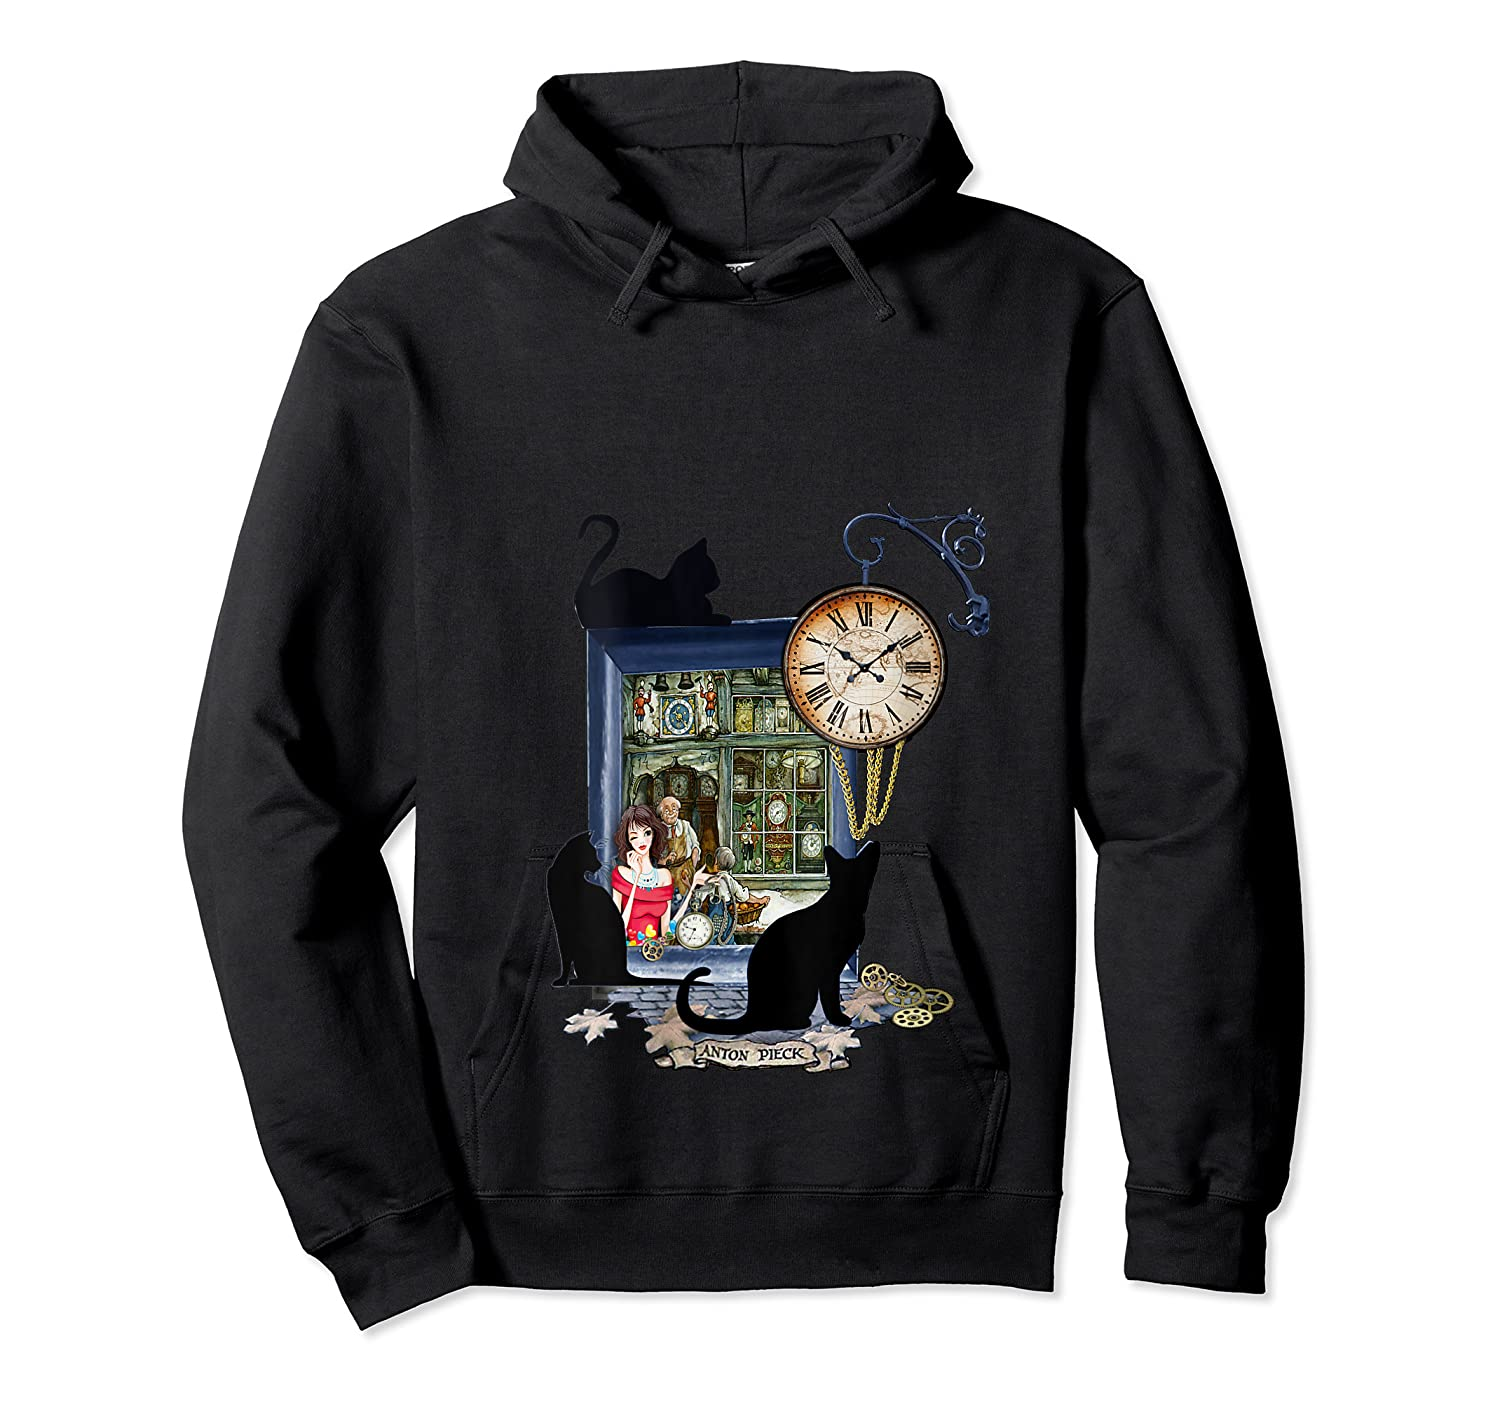 Steampunk Vintage The Clock Maker Shirts Unisex Pullover Hoodie